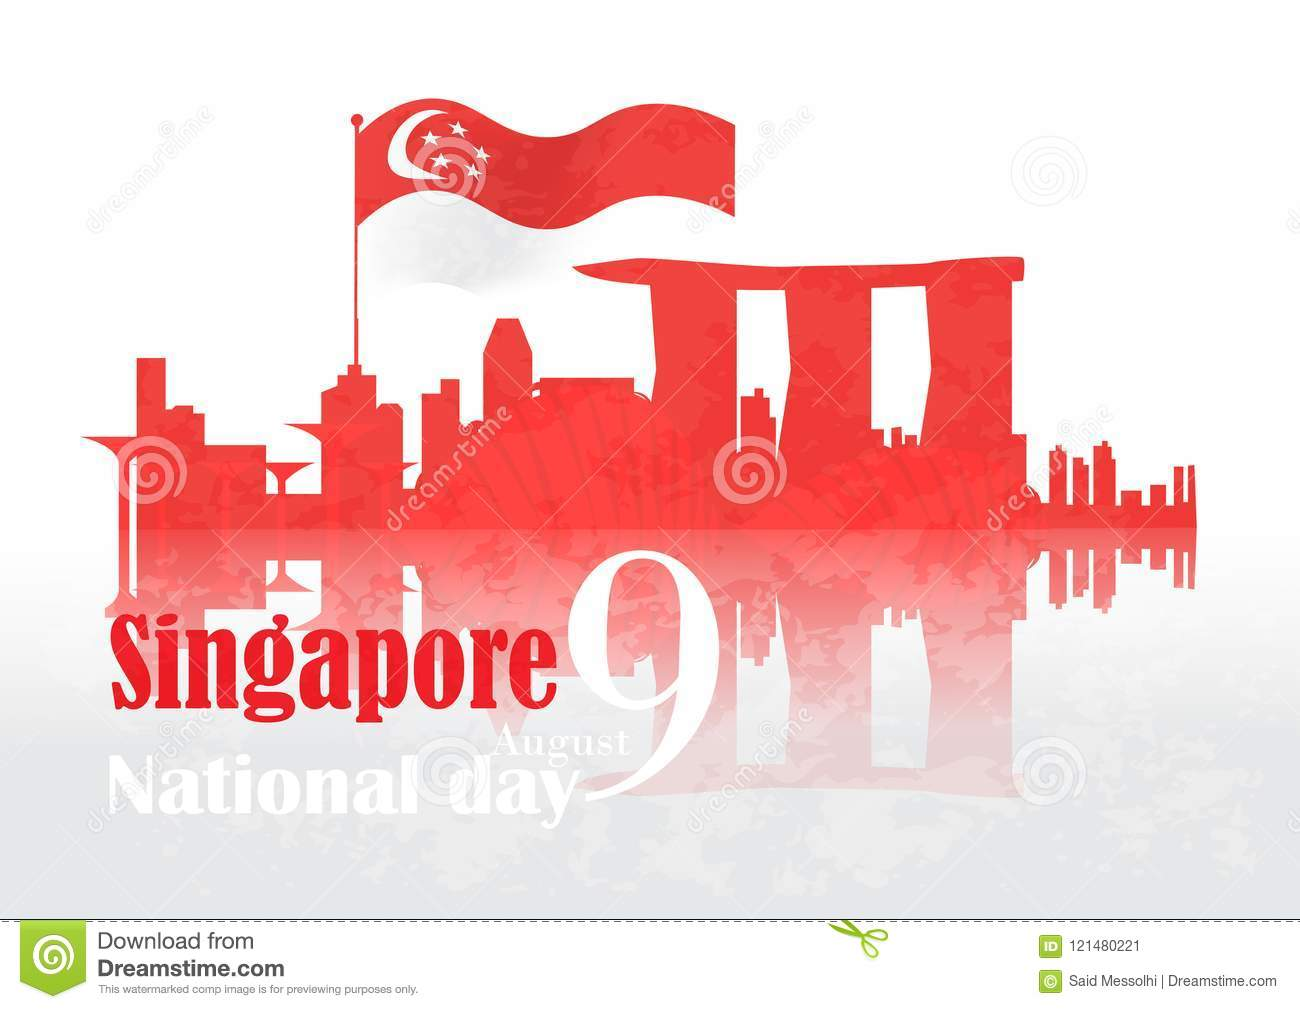 Singapore national day background stock vector illustration of download singapore national day background stock vector illustration of illustration greetings 121480221 m4hsunfo